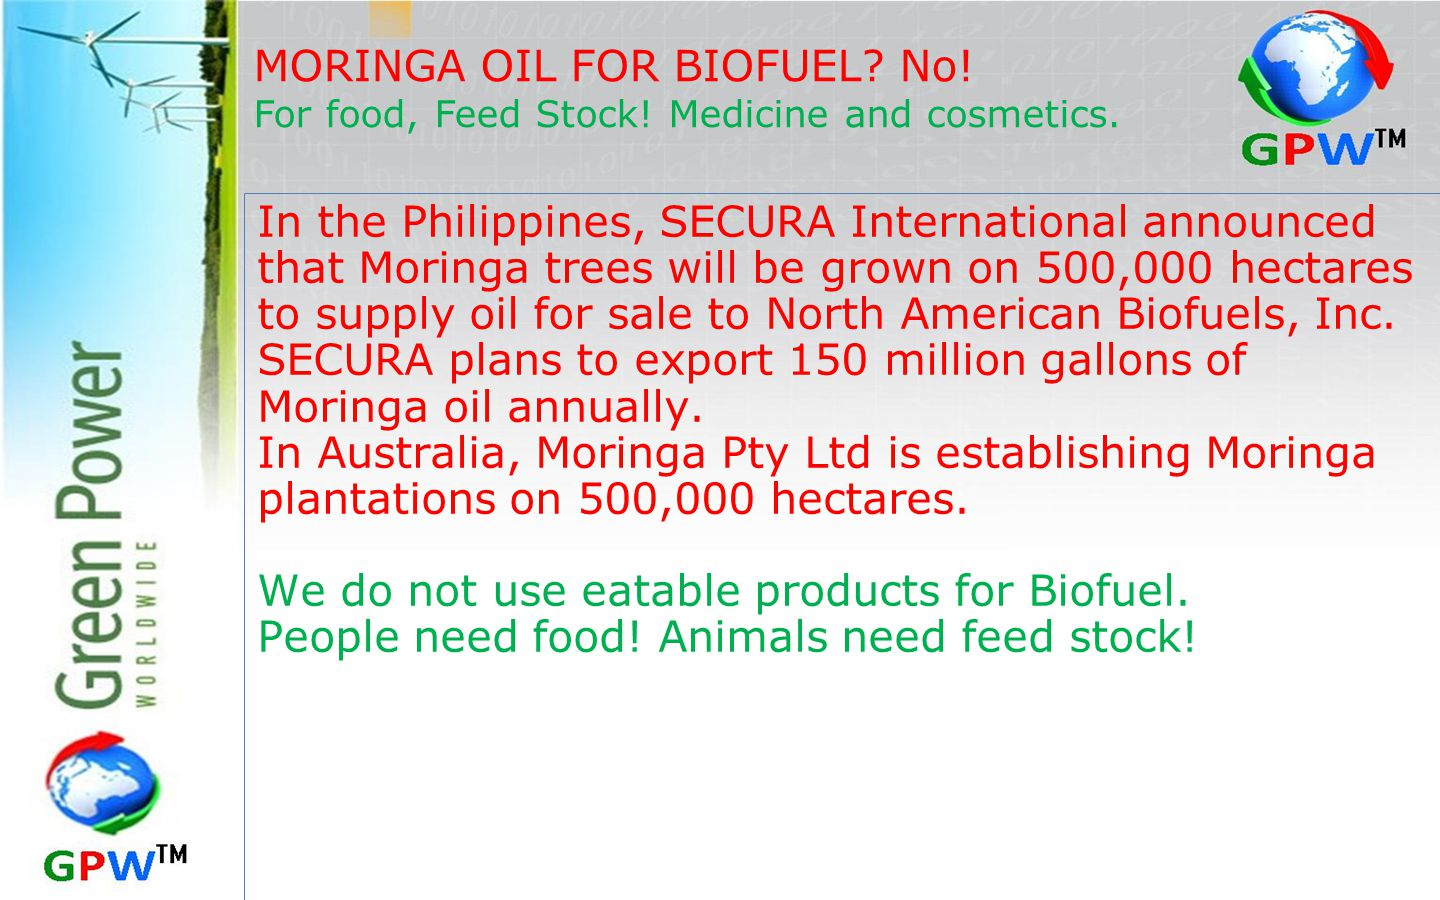 MORINGA OIL FOR BIOFUEL No!